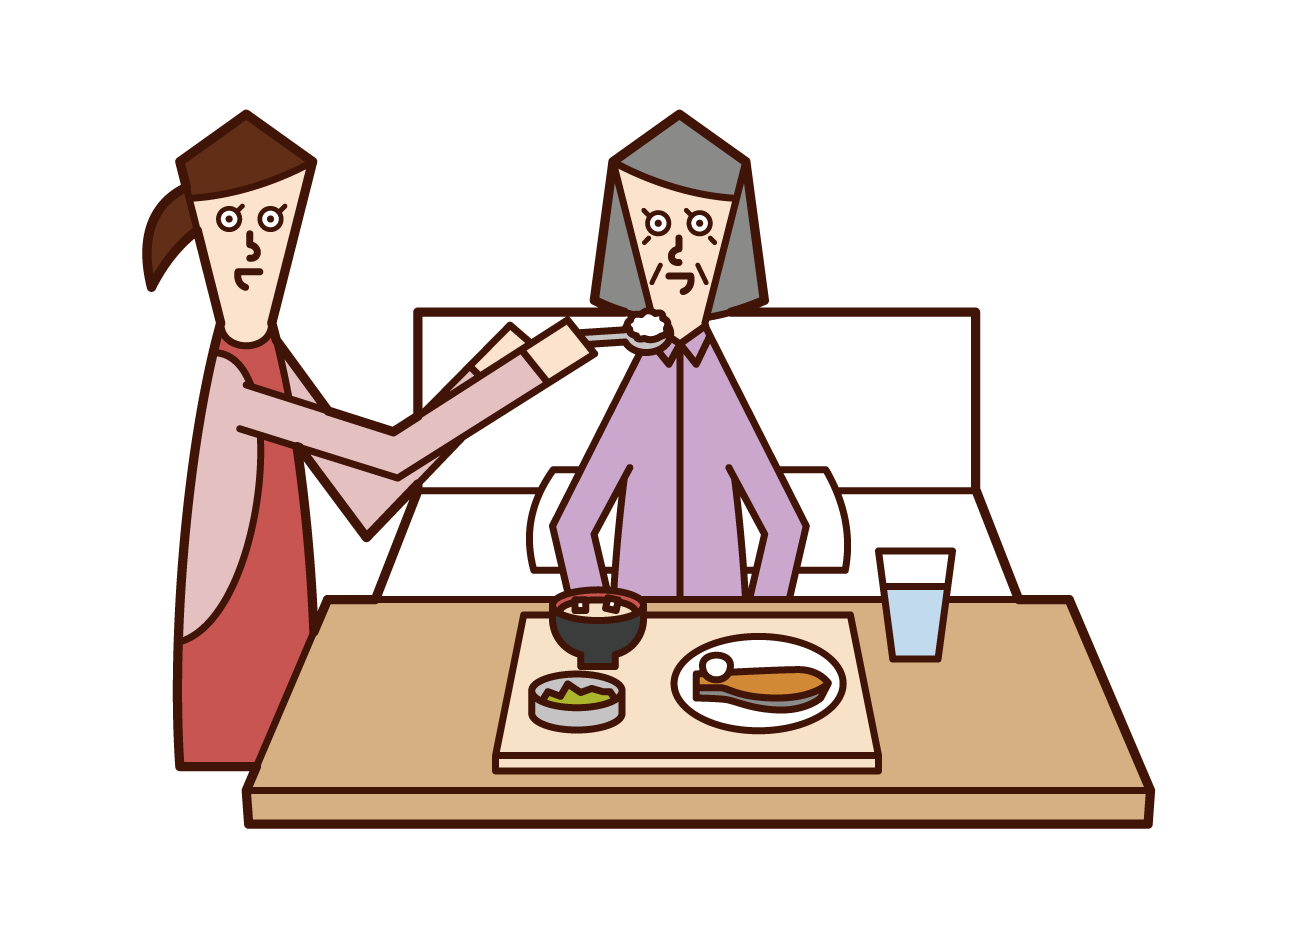 Illustration of an elderly person (woman) receiving meal assistance